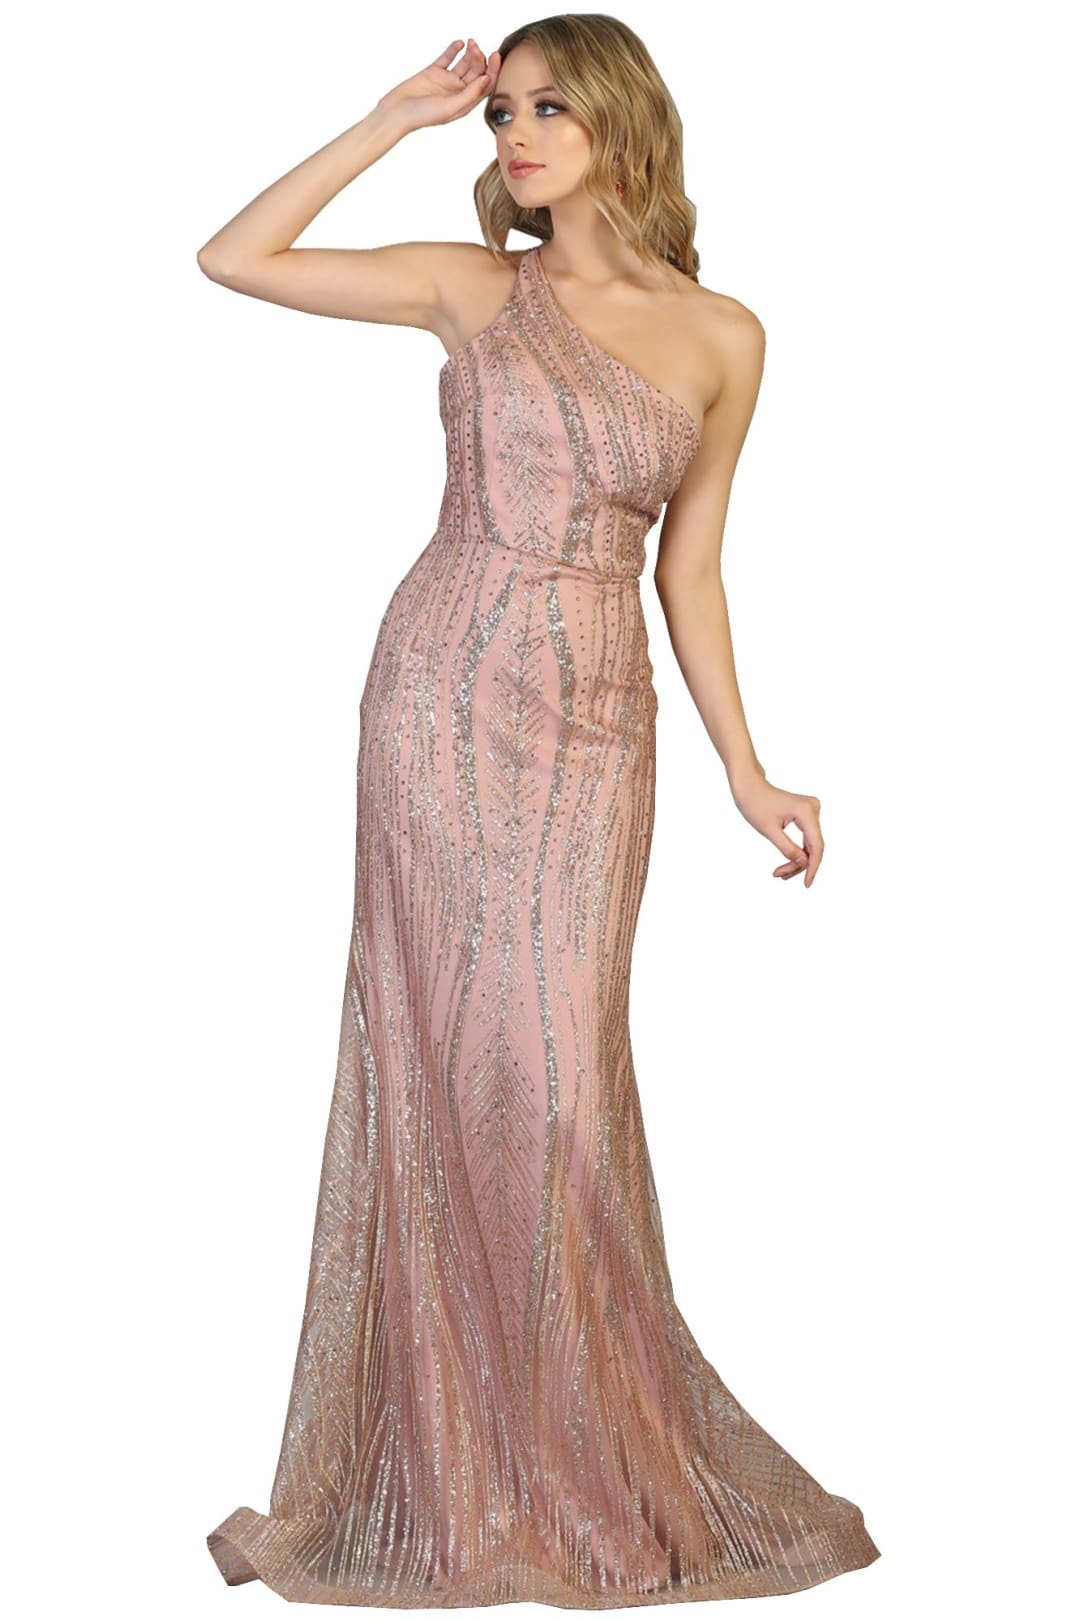 Special Occasion Shiny Dresses - ROSE GOLD / 2